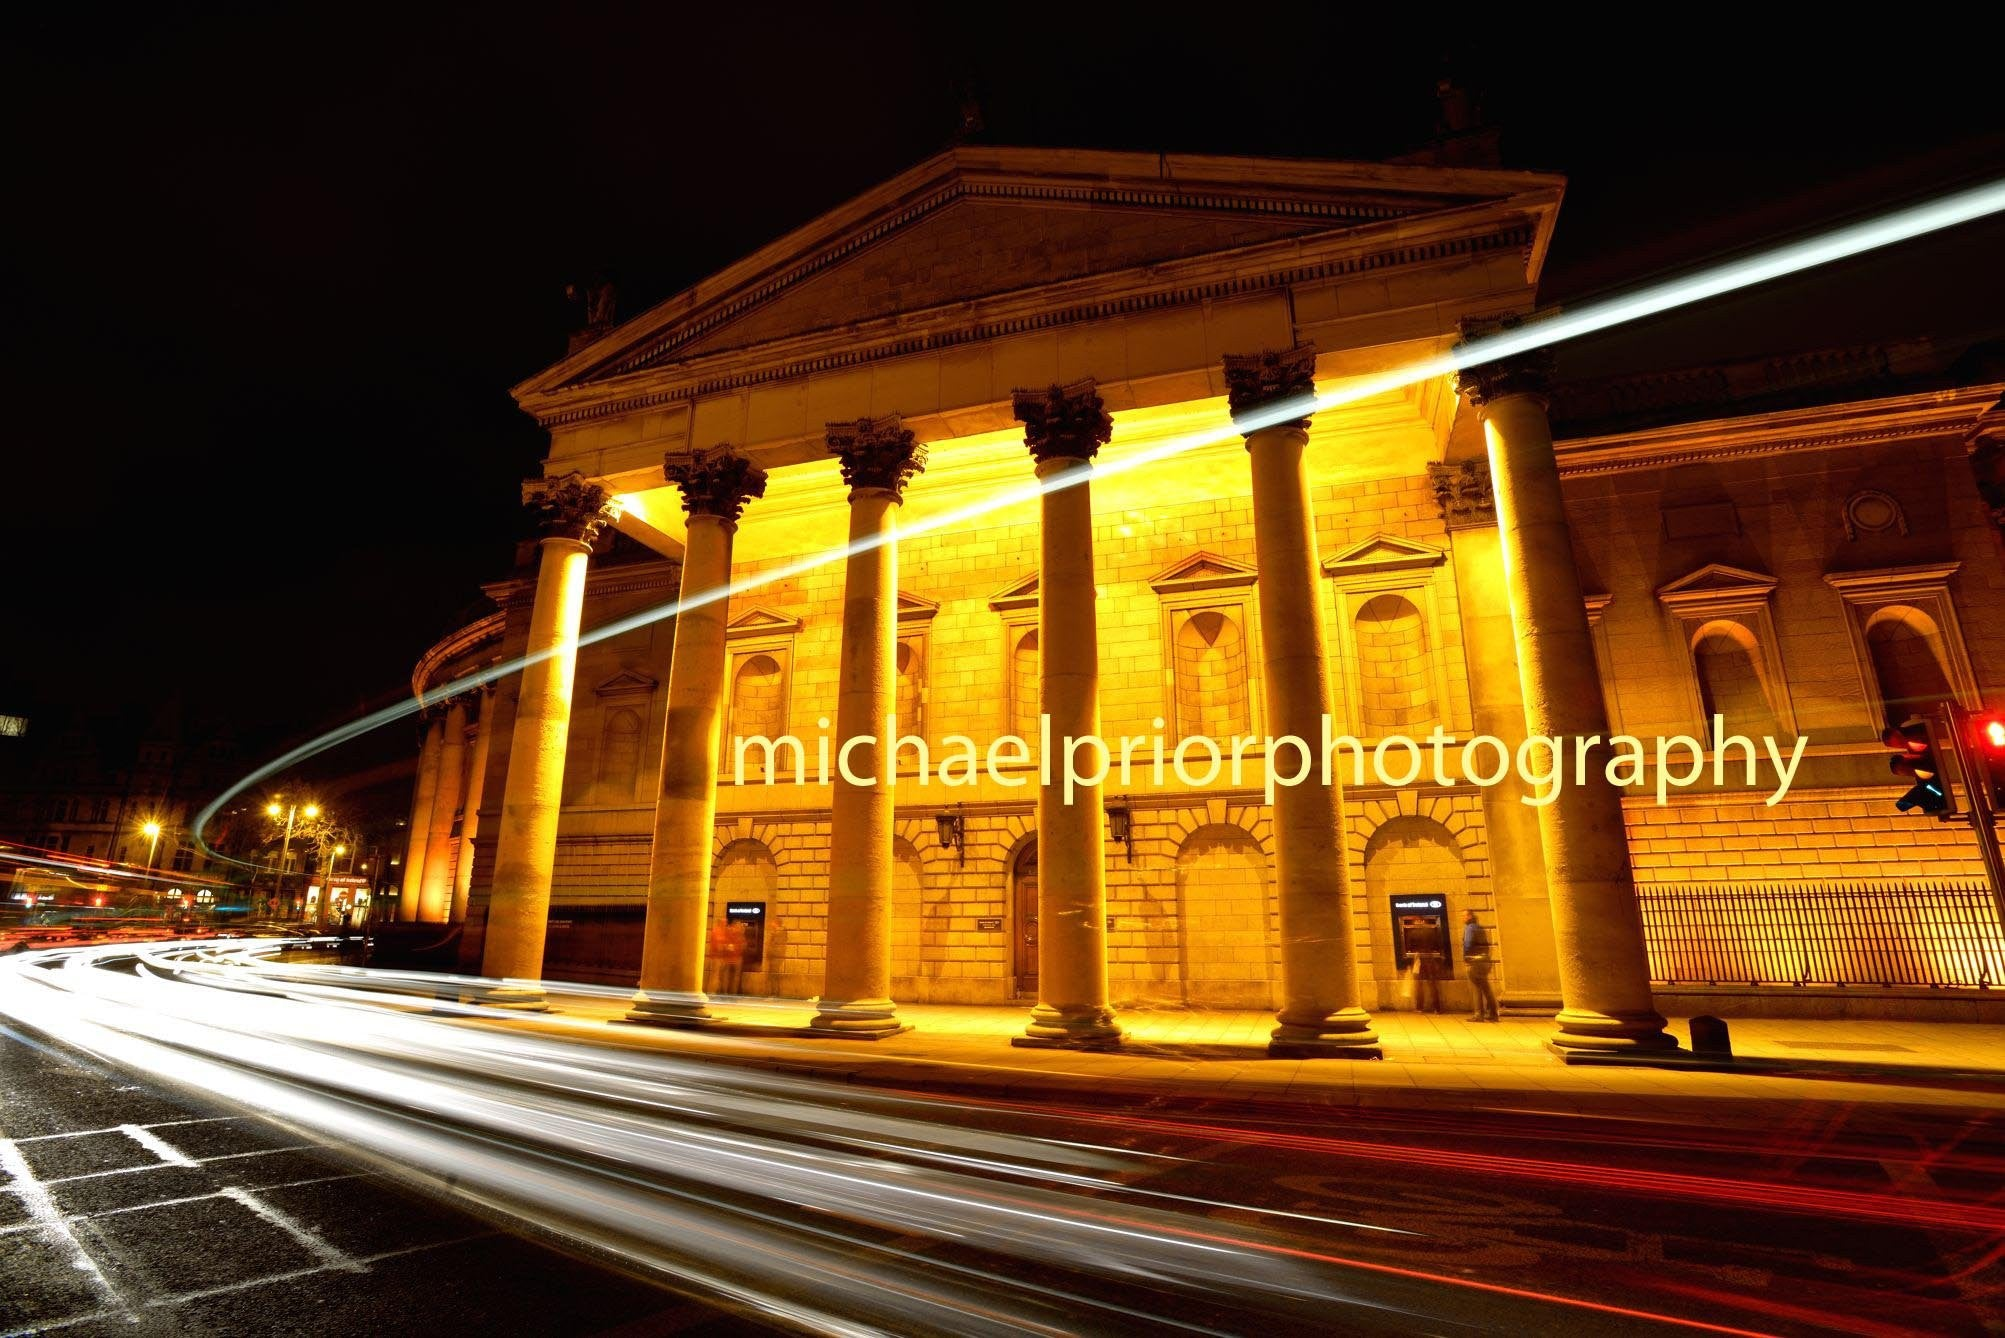 Bank Of Ireland Dublin - Michael Prior Photography